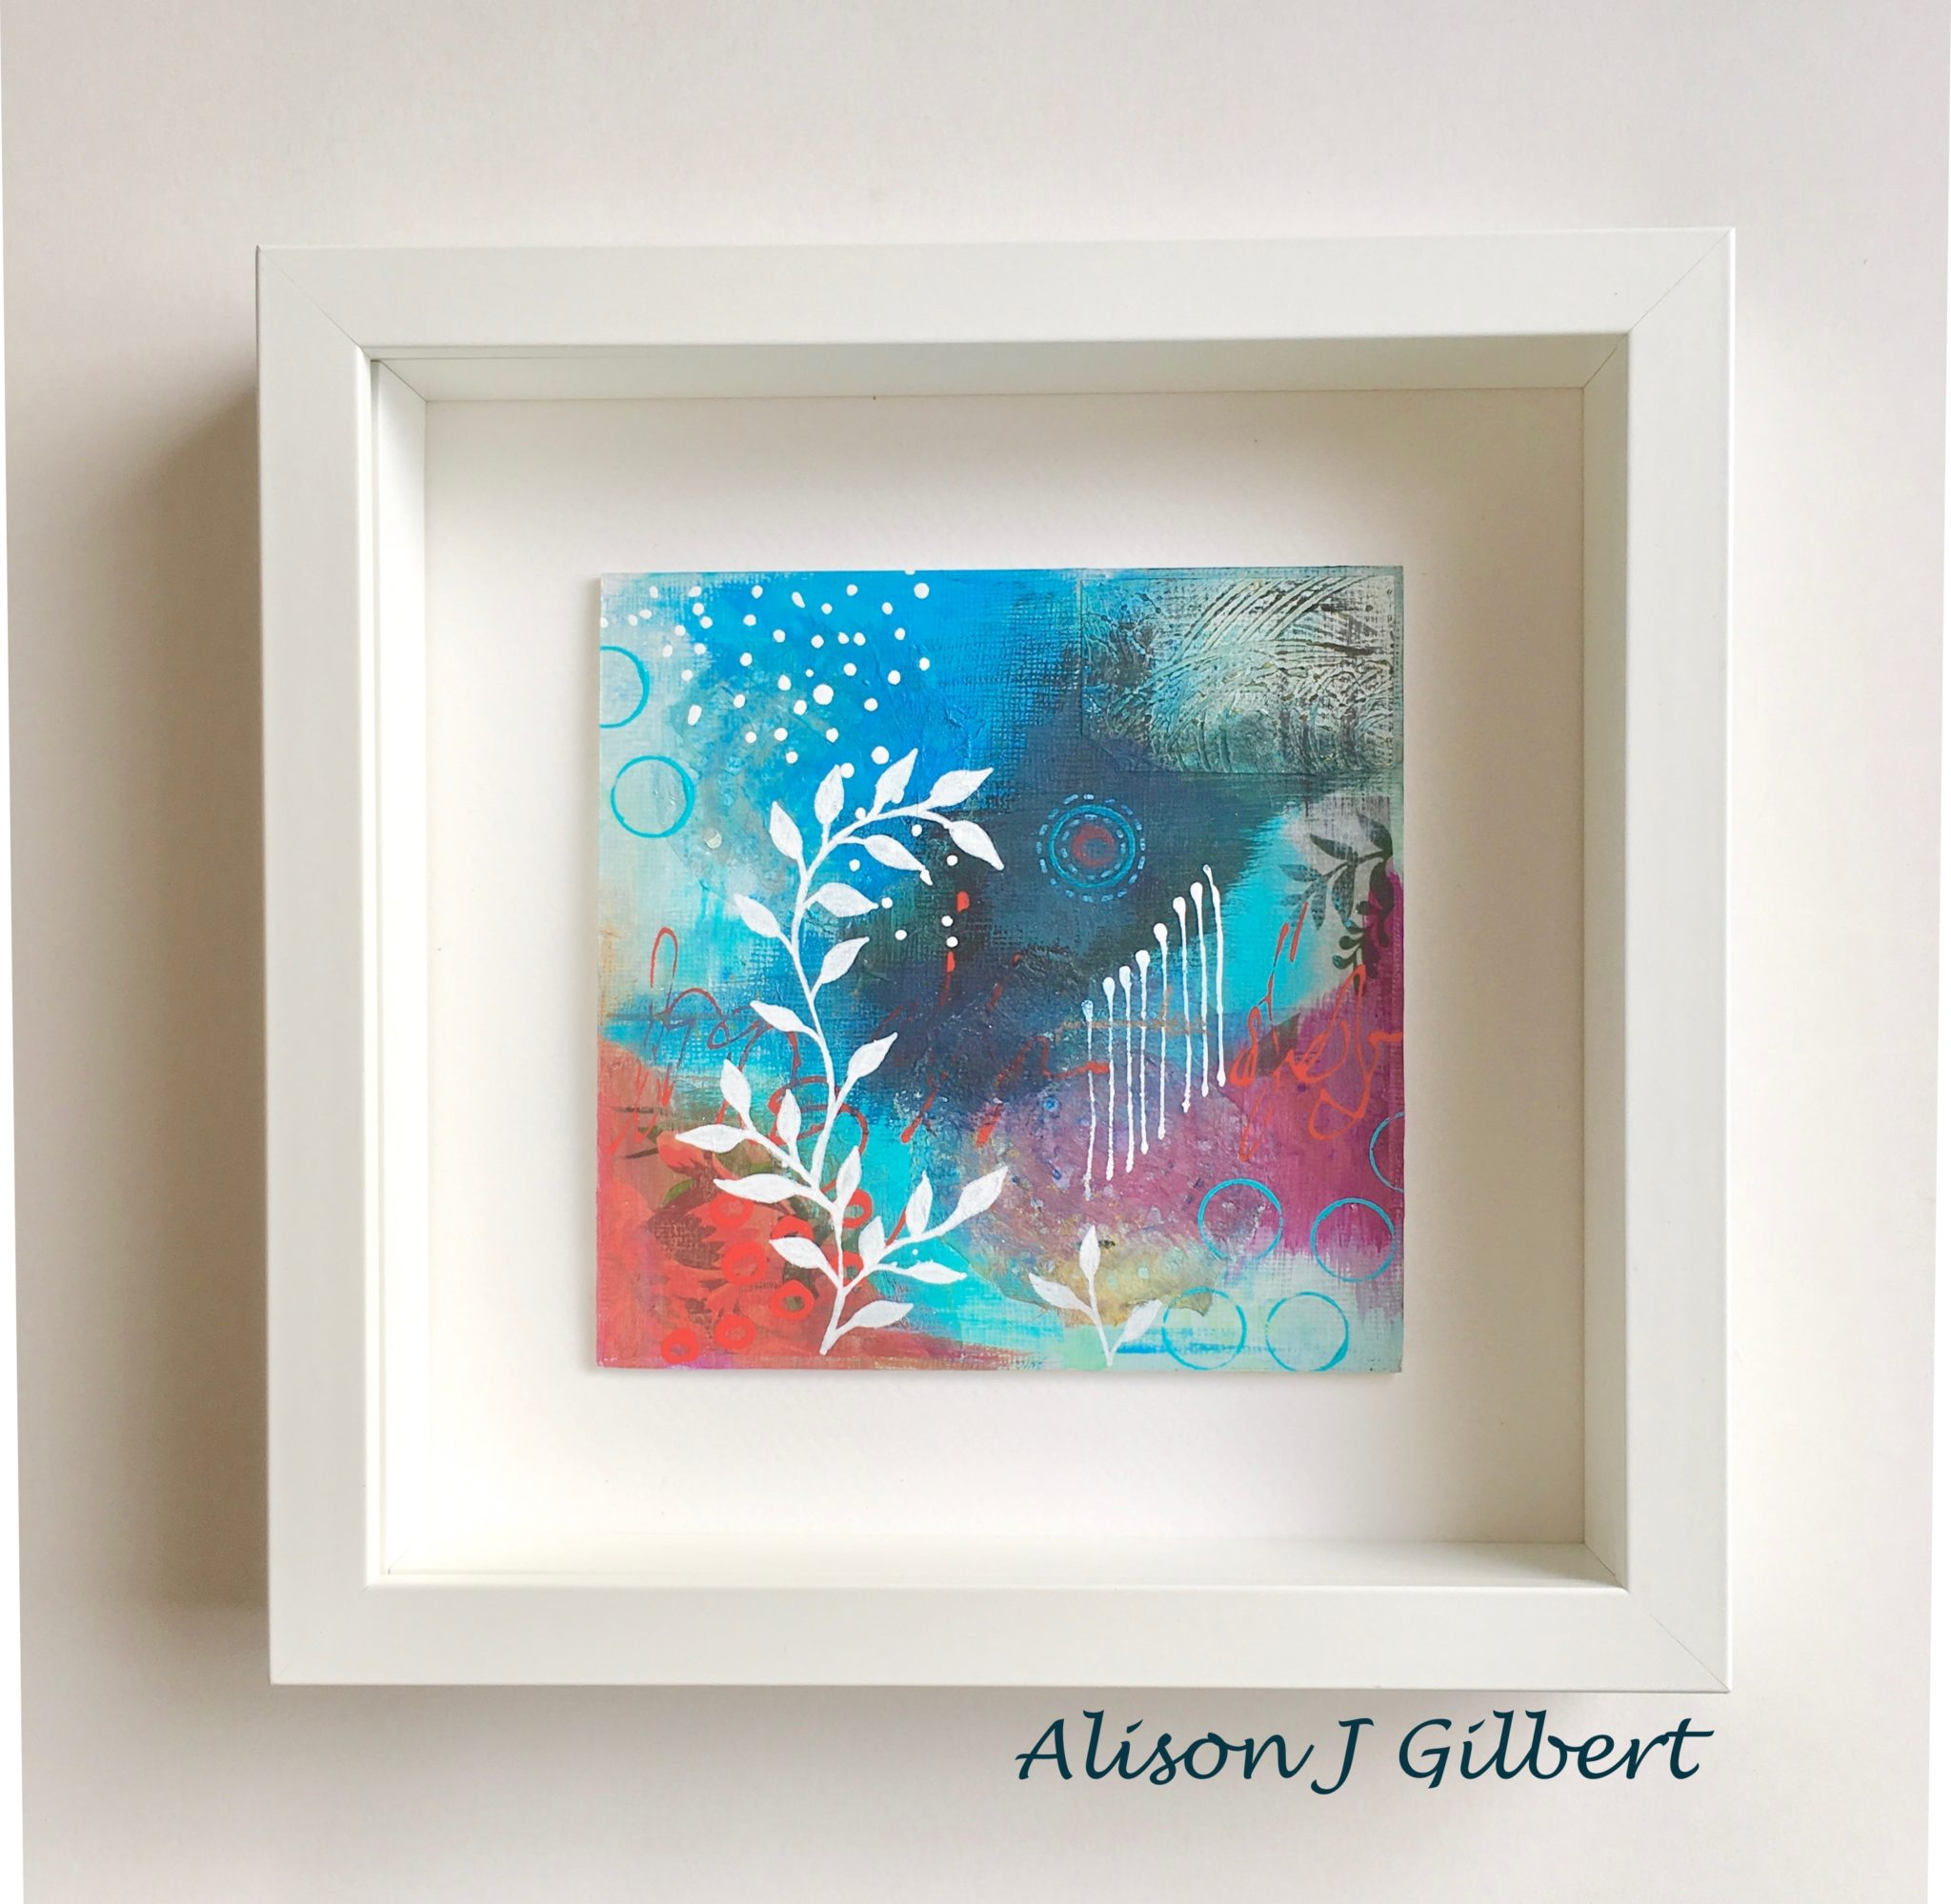 MMB 15 19019F - Framed small, blue and red abstract mixed media art (19)